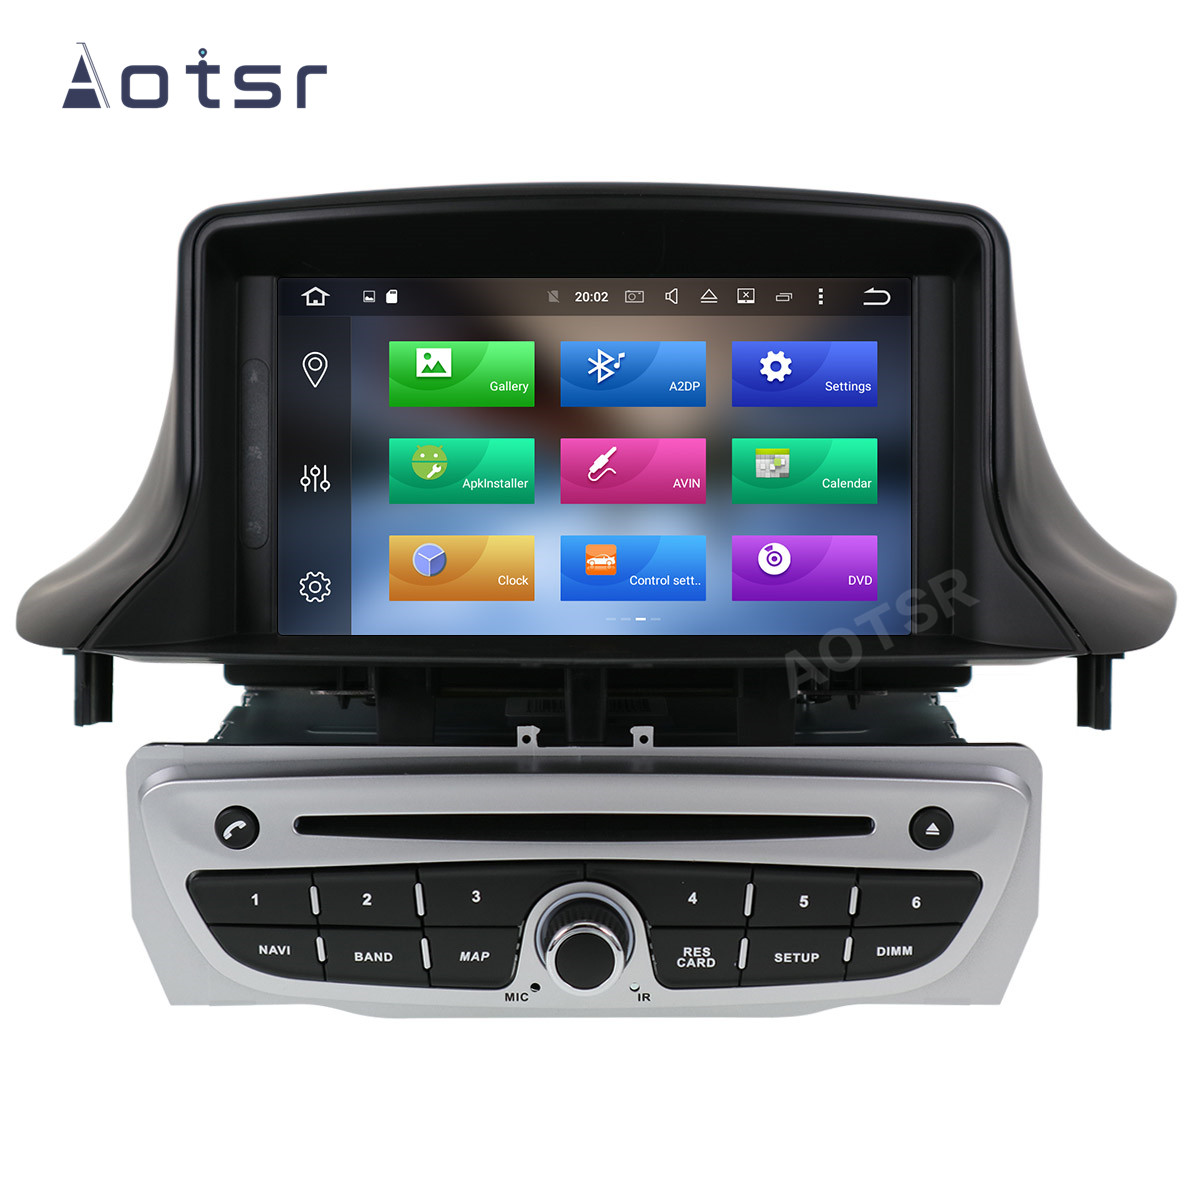 AOTSR Car Radio Auto Android 10 For Renault <font><b>Megane</b></font> <font><b>3</b></font> Fluence 2009 - 2015 Multimedia Player Stereo <font><b>GPS</b></font> Navigation DSP AutoRadio image